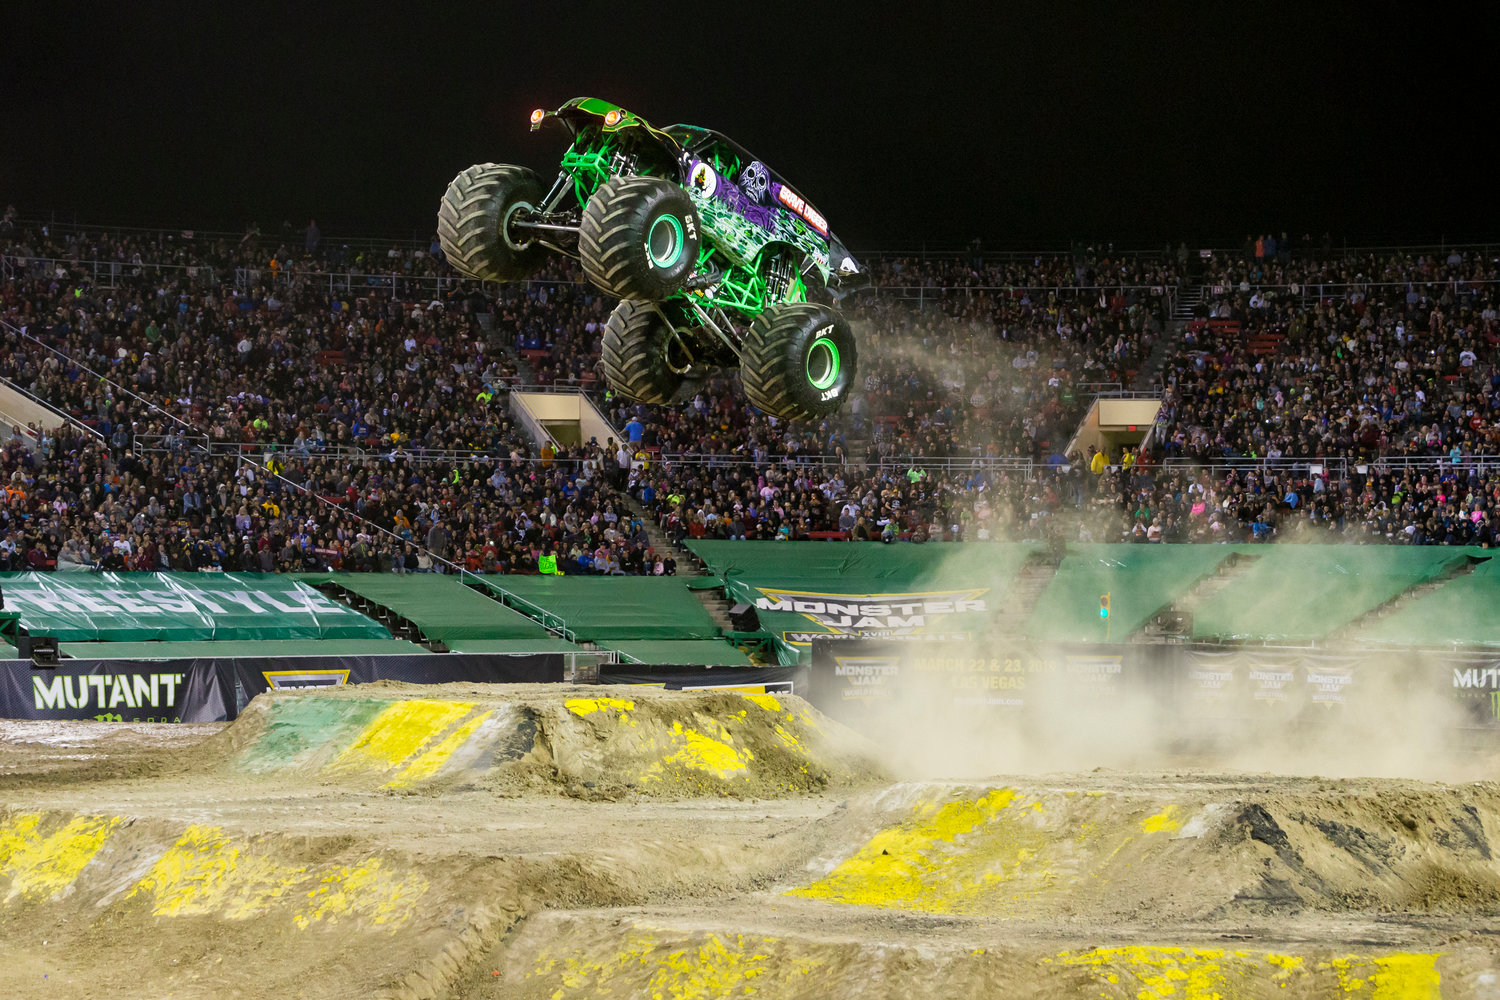 Monster trucks reach epic heights in the latest edition of Monster Jam. Grave Digger and other popular trucks will thrill fans with exciting car-crunching feats in their customized high-power vehicles.